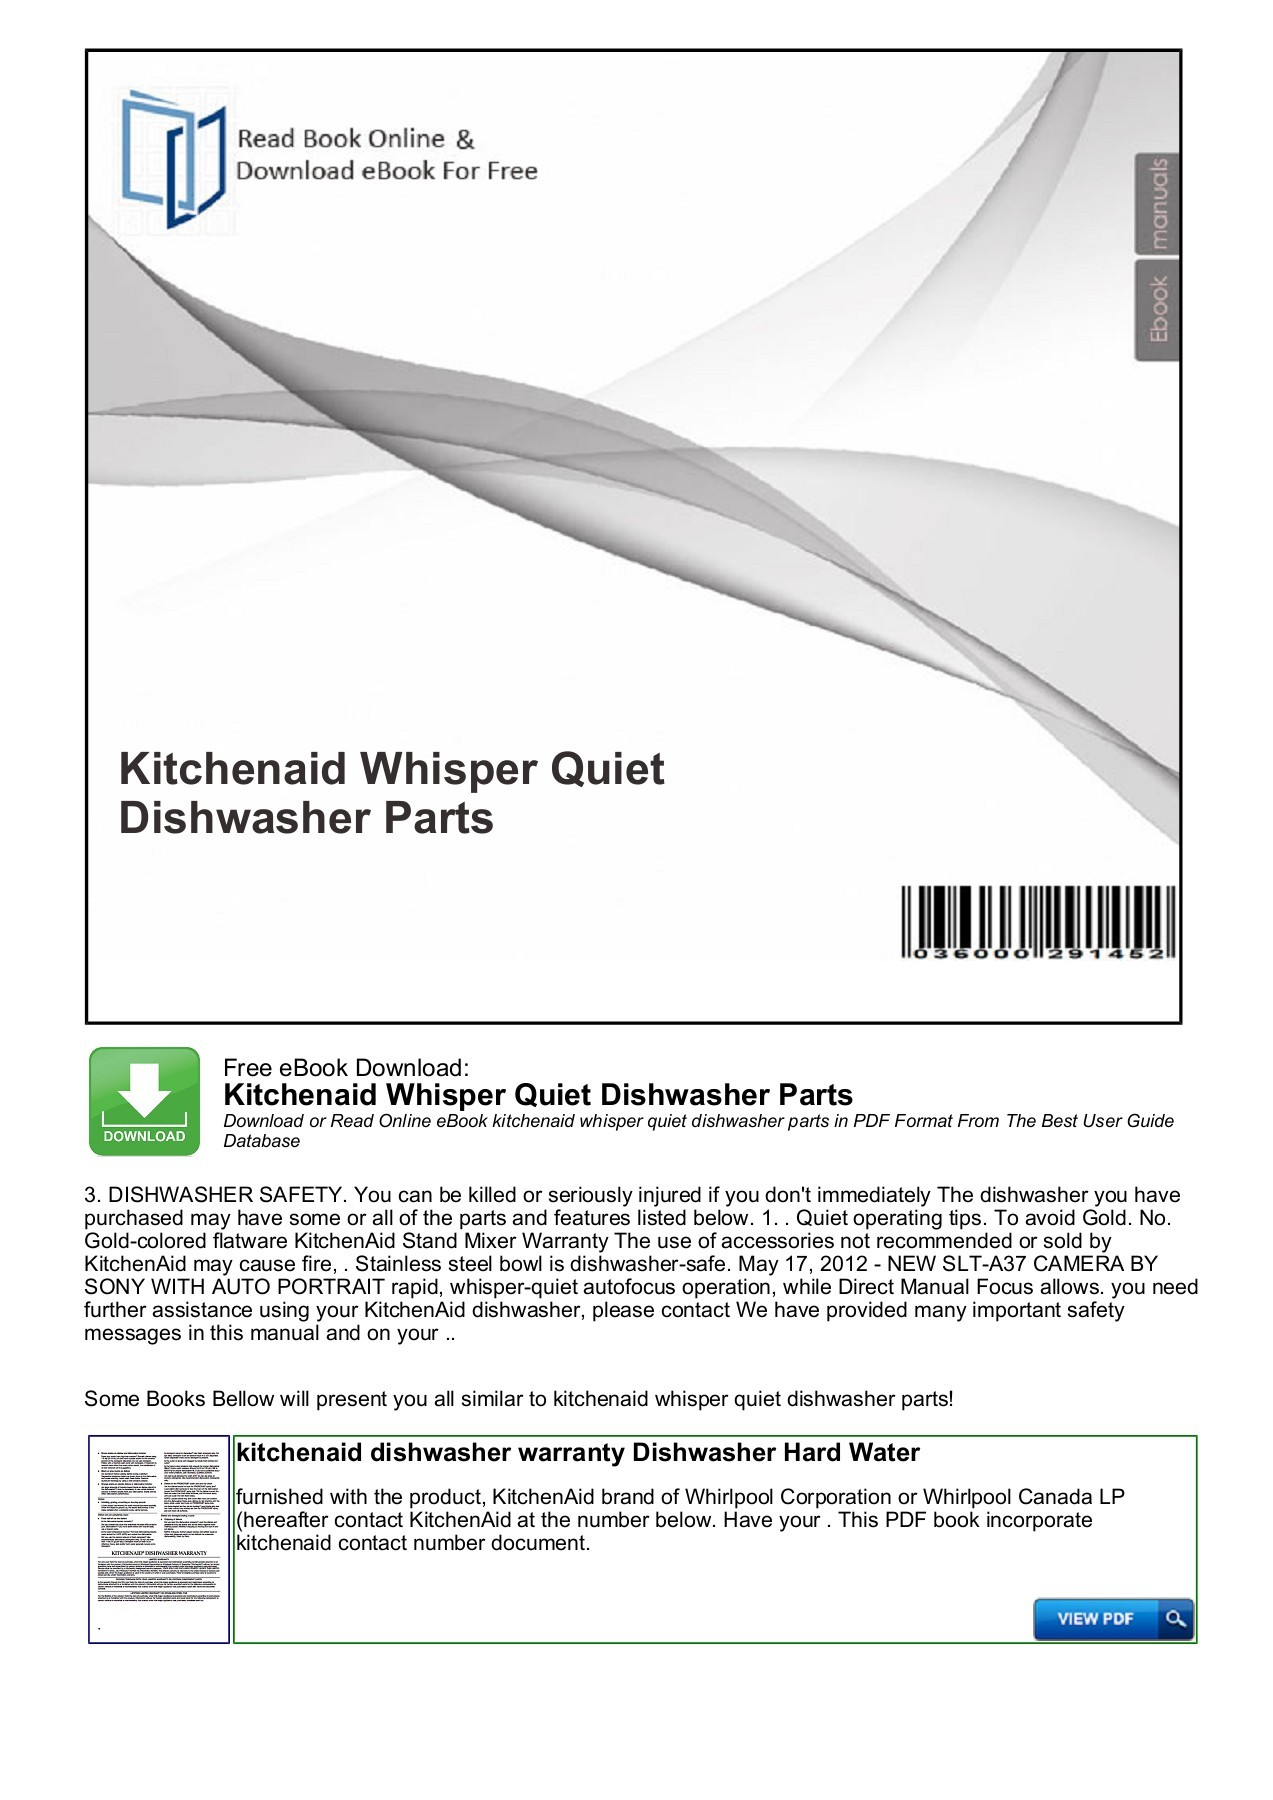 Whirlpool Dishwasher Parts Canada Kitchenaid Whisper Quiet Dishwasher Parts Productmanualguide